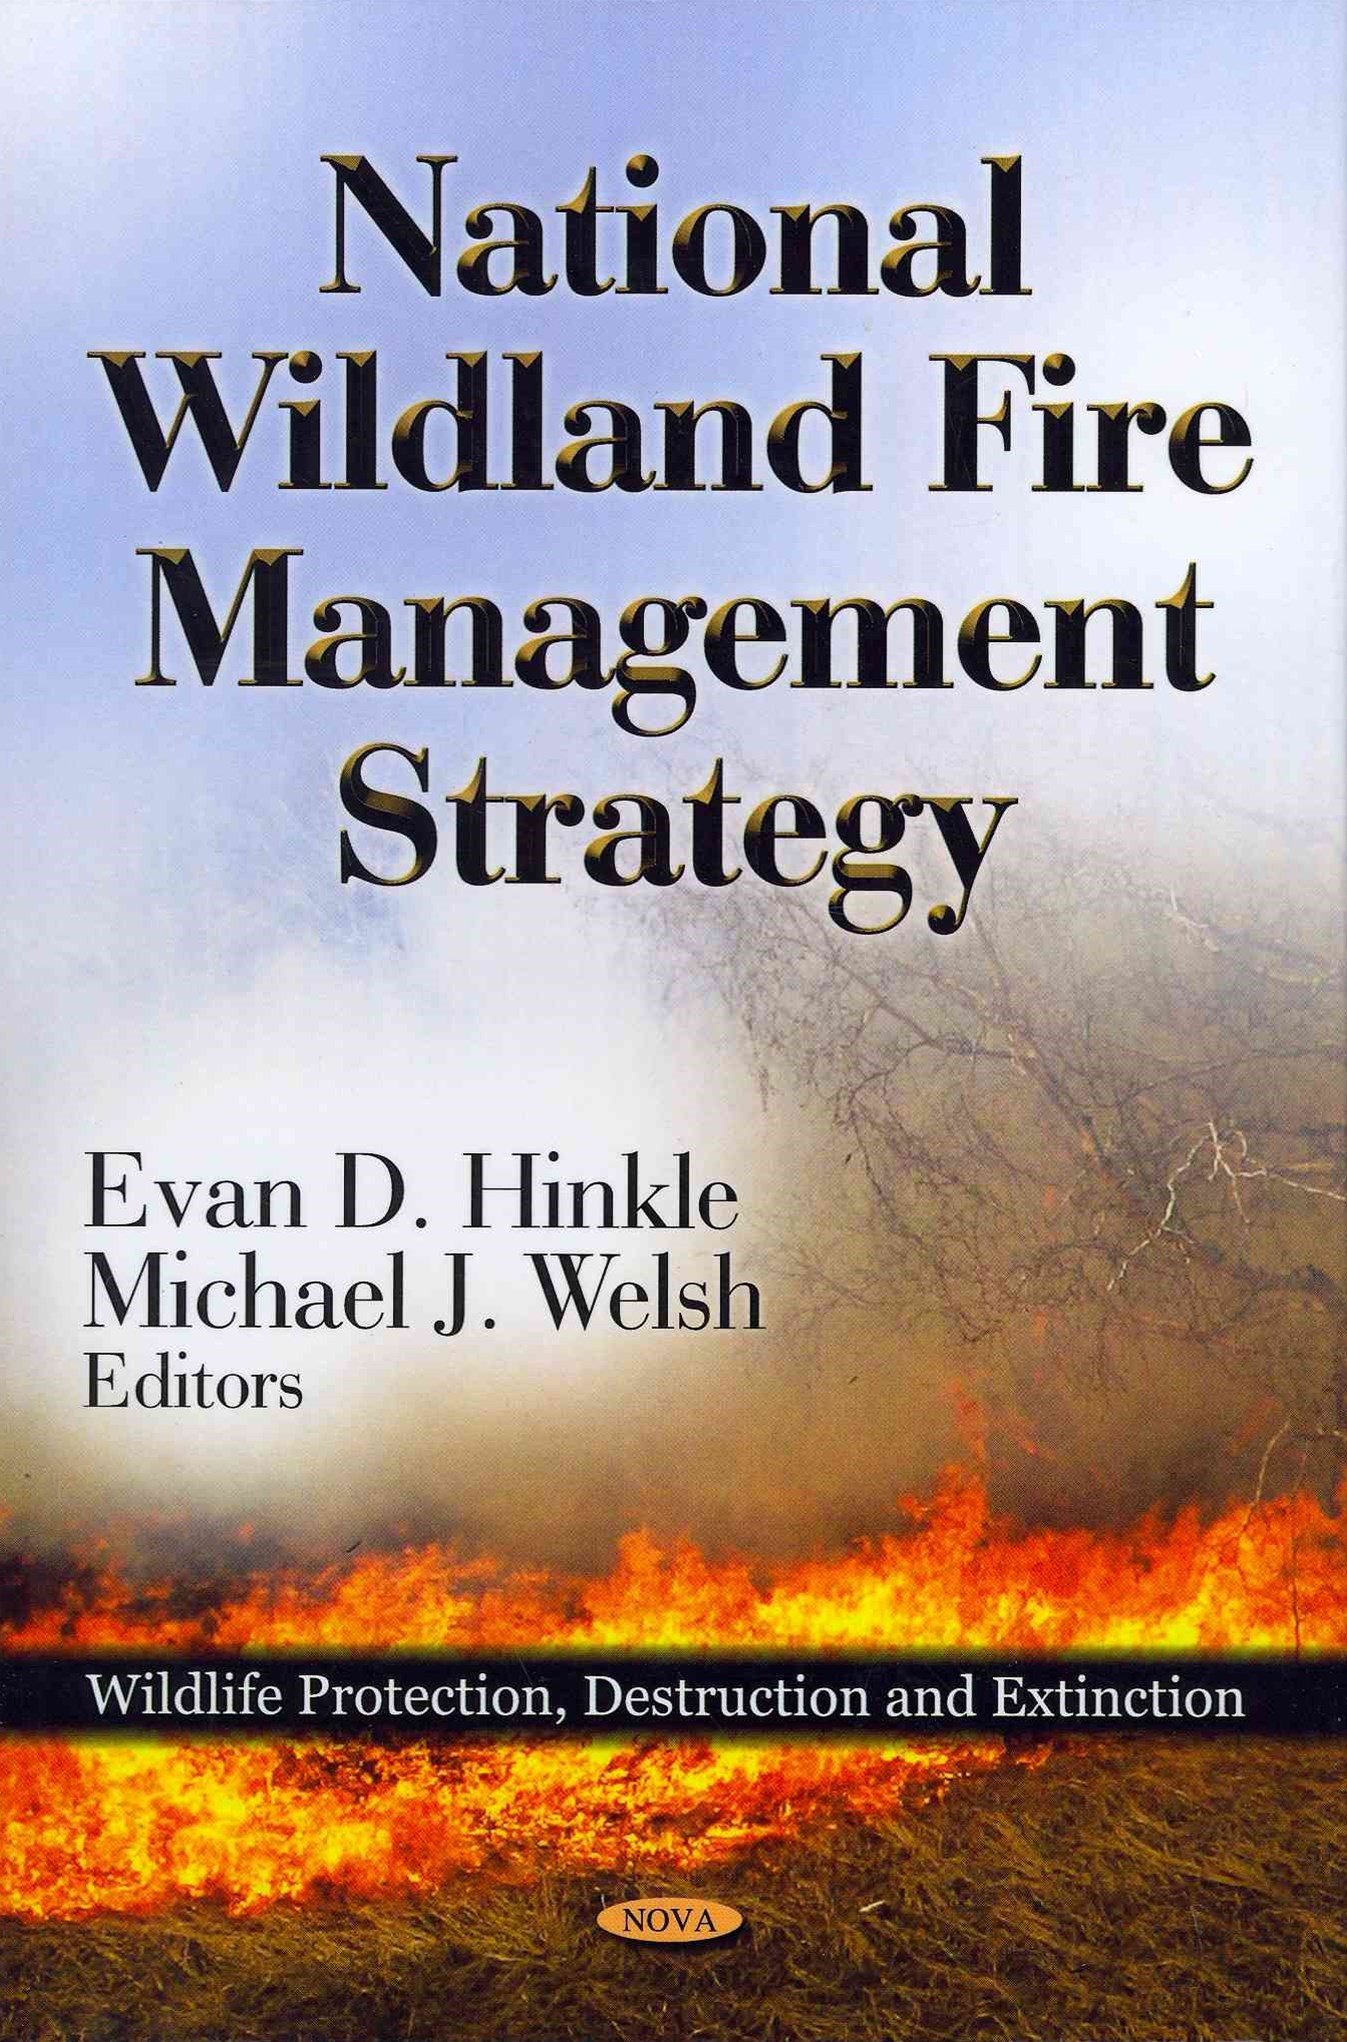 National Wildland Fire Management Strategy